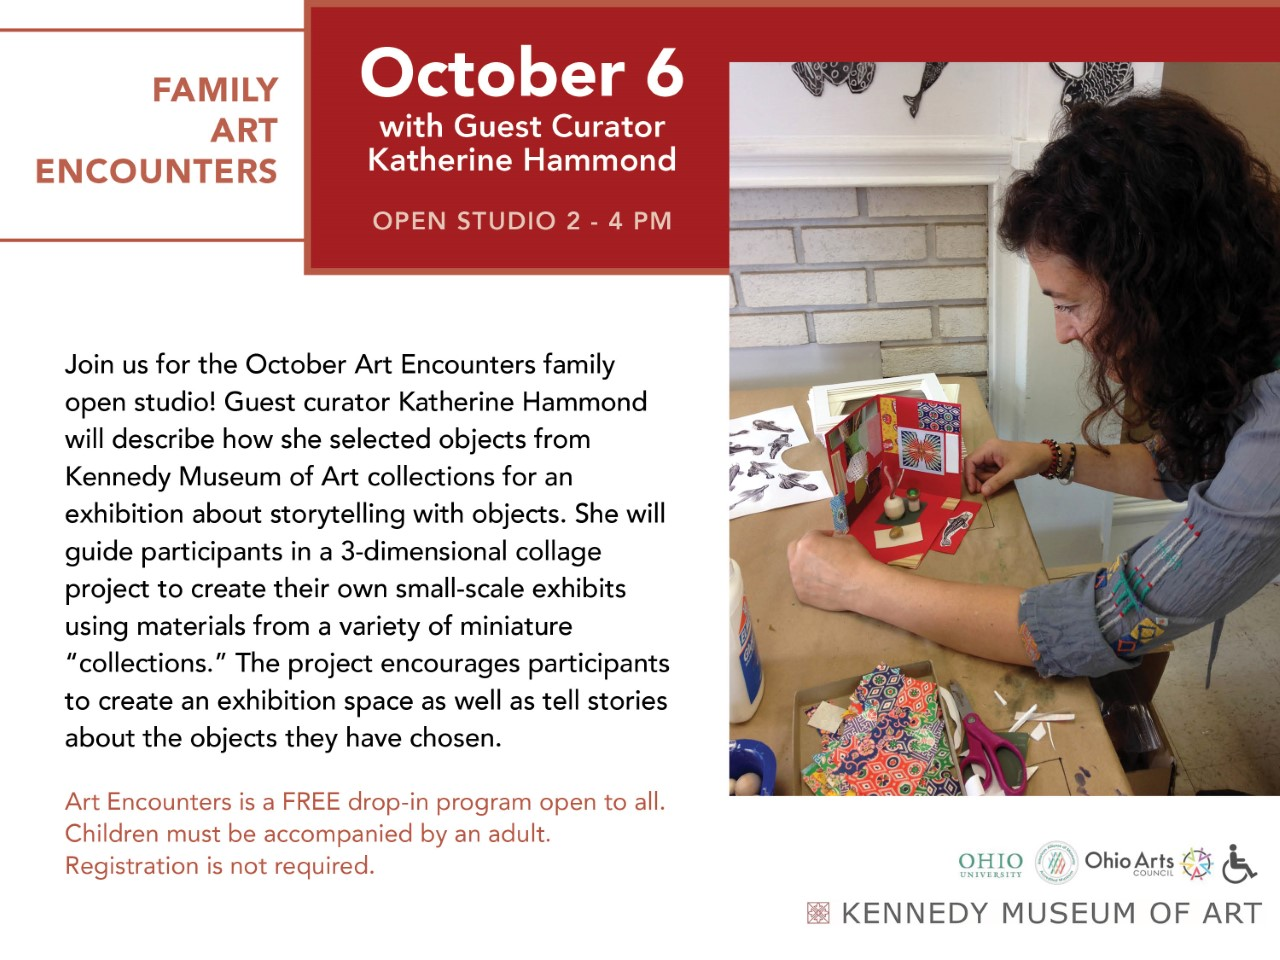 Family Art Encounters flier